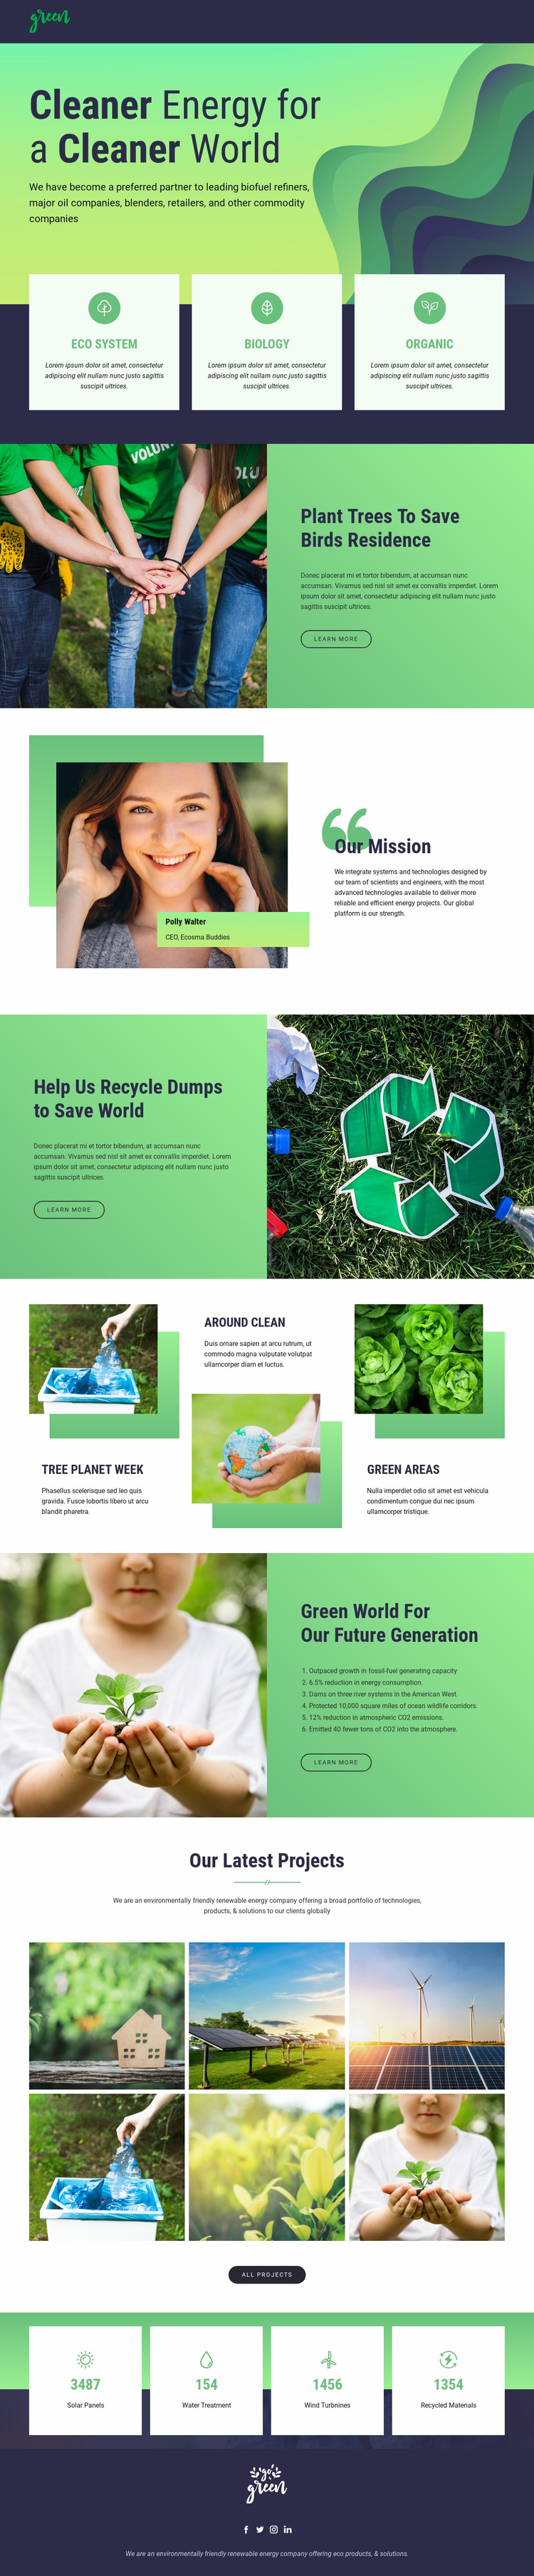 Clean energy to save nature Web Page Design